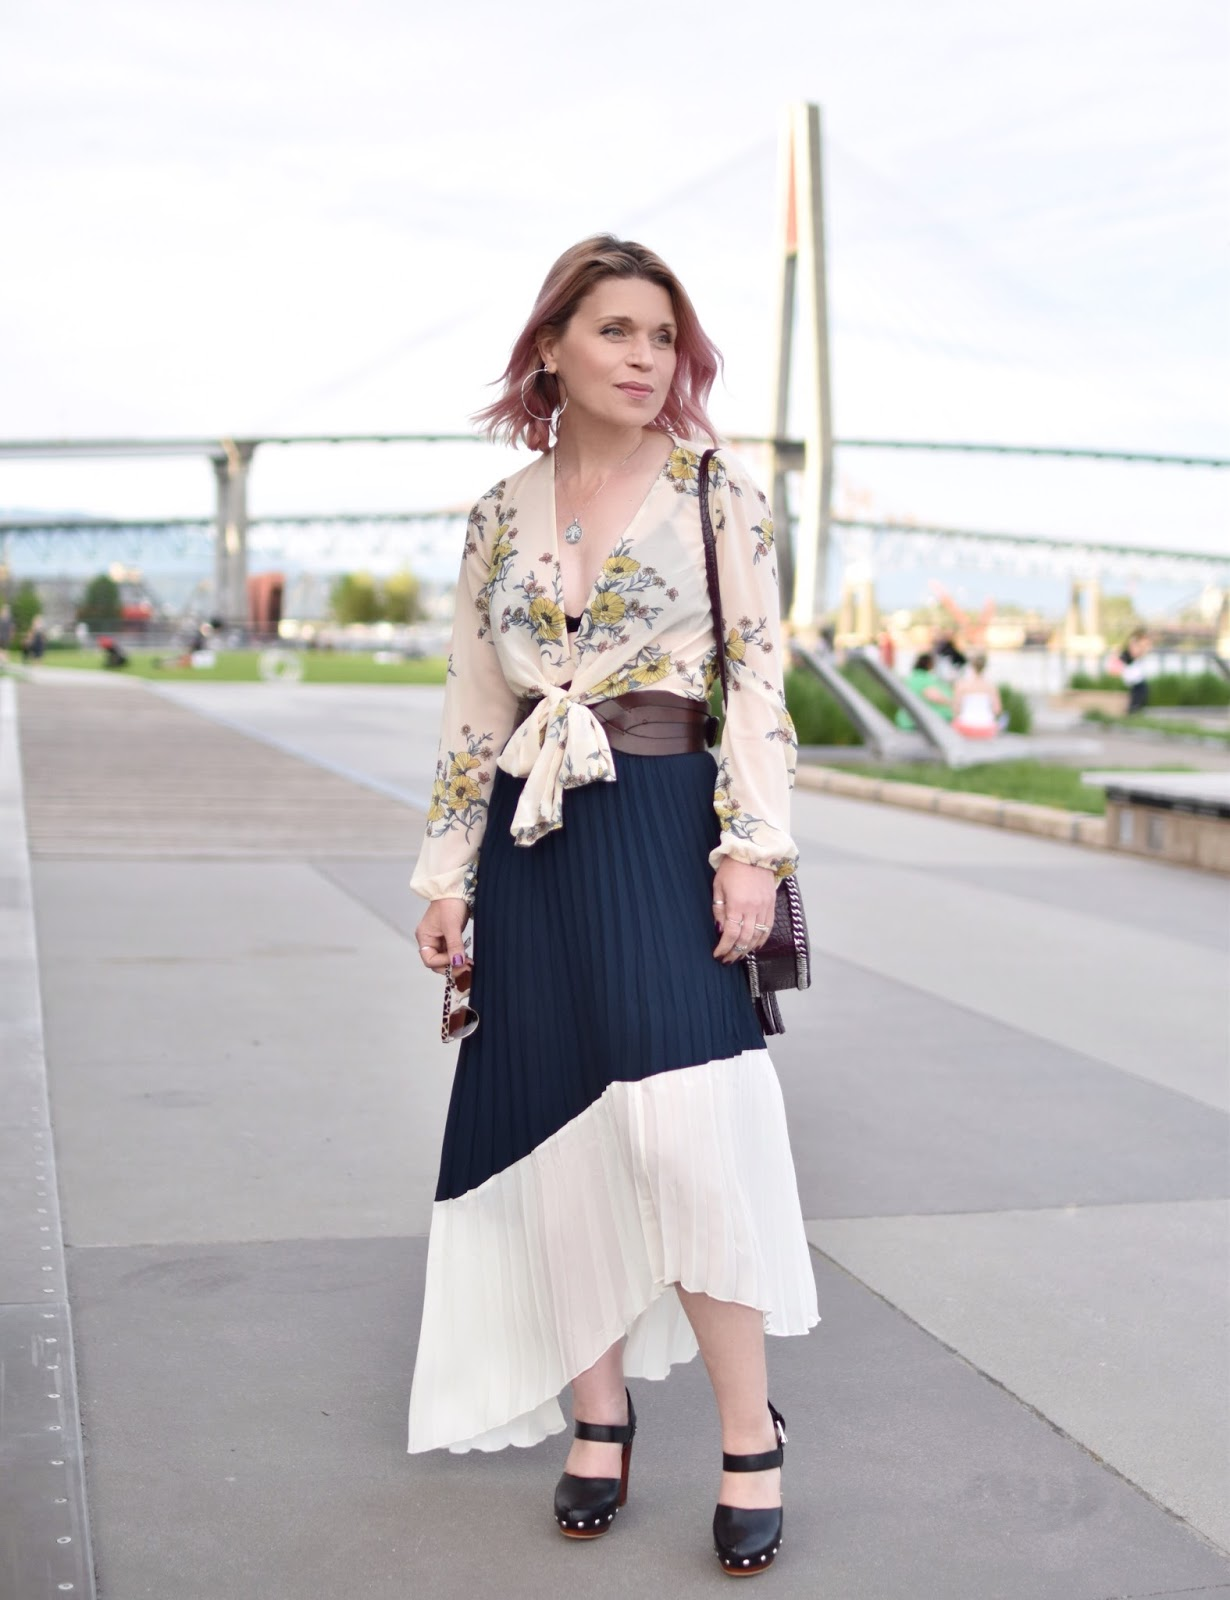 Monika Faulkner outfit inspiration - styling a pleated maxi skirt with a floral blouse, corset belt, and platform mary-jane shoes